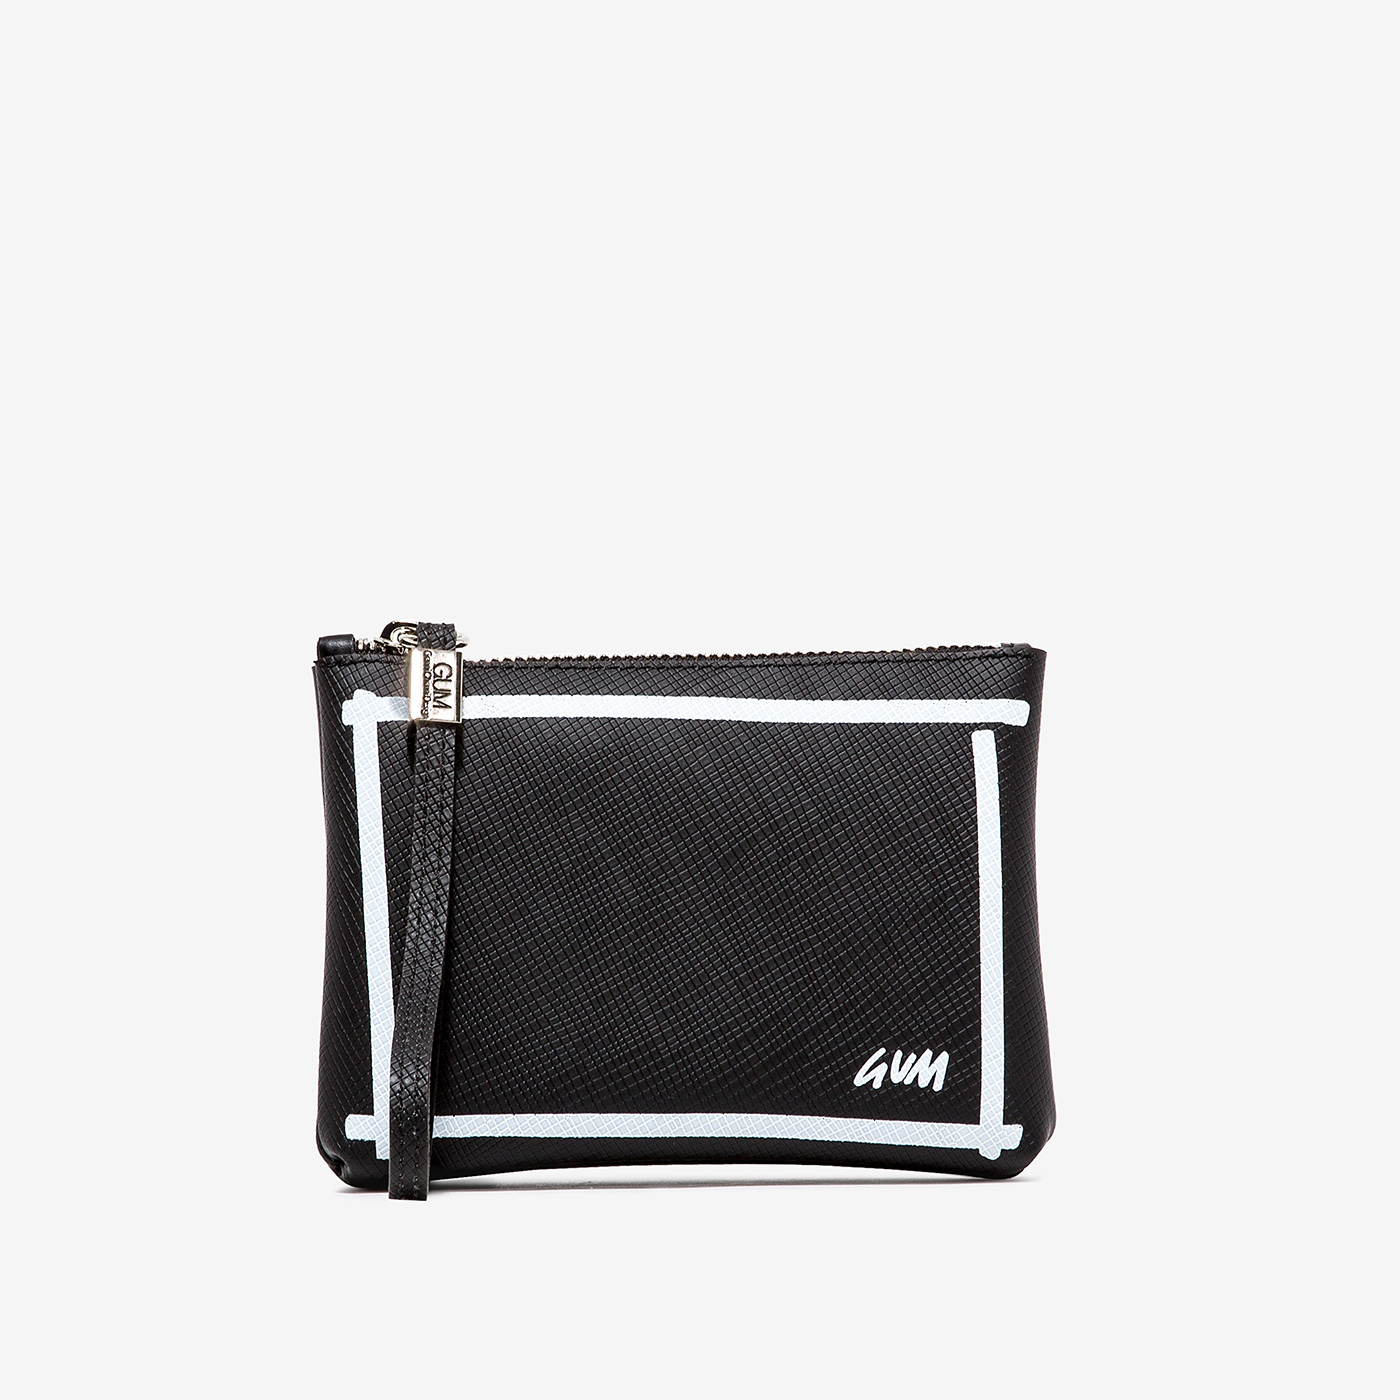 GUM: NUMBERS CLUTCH BAG SMALL